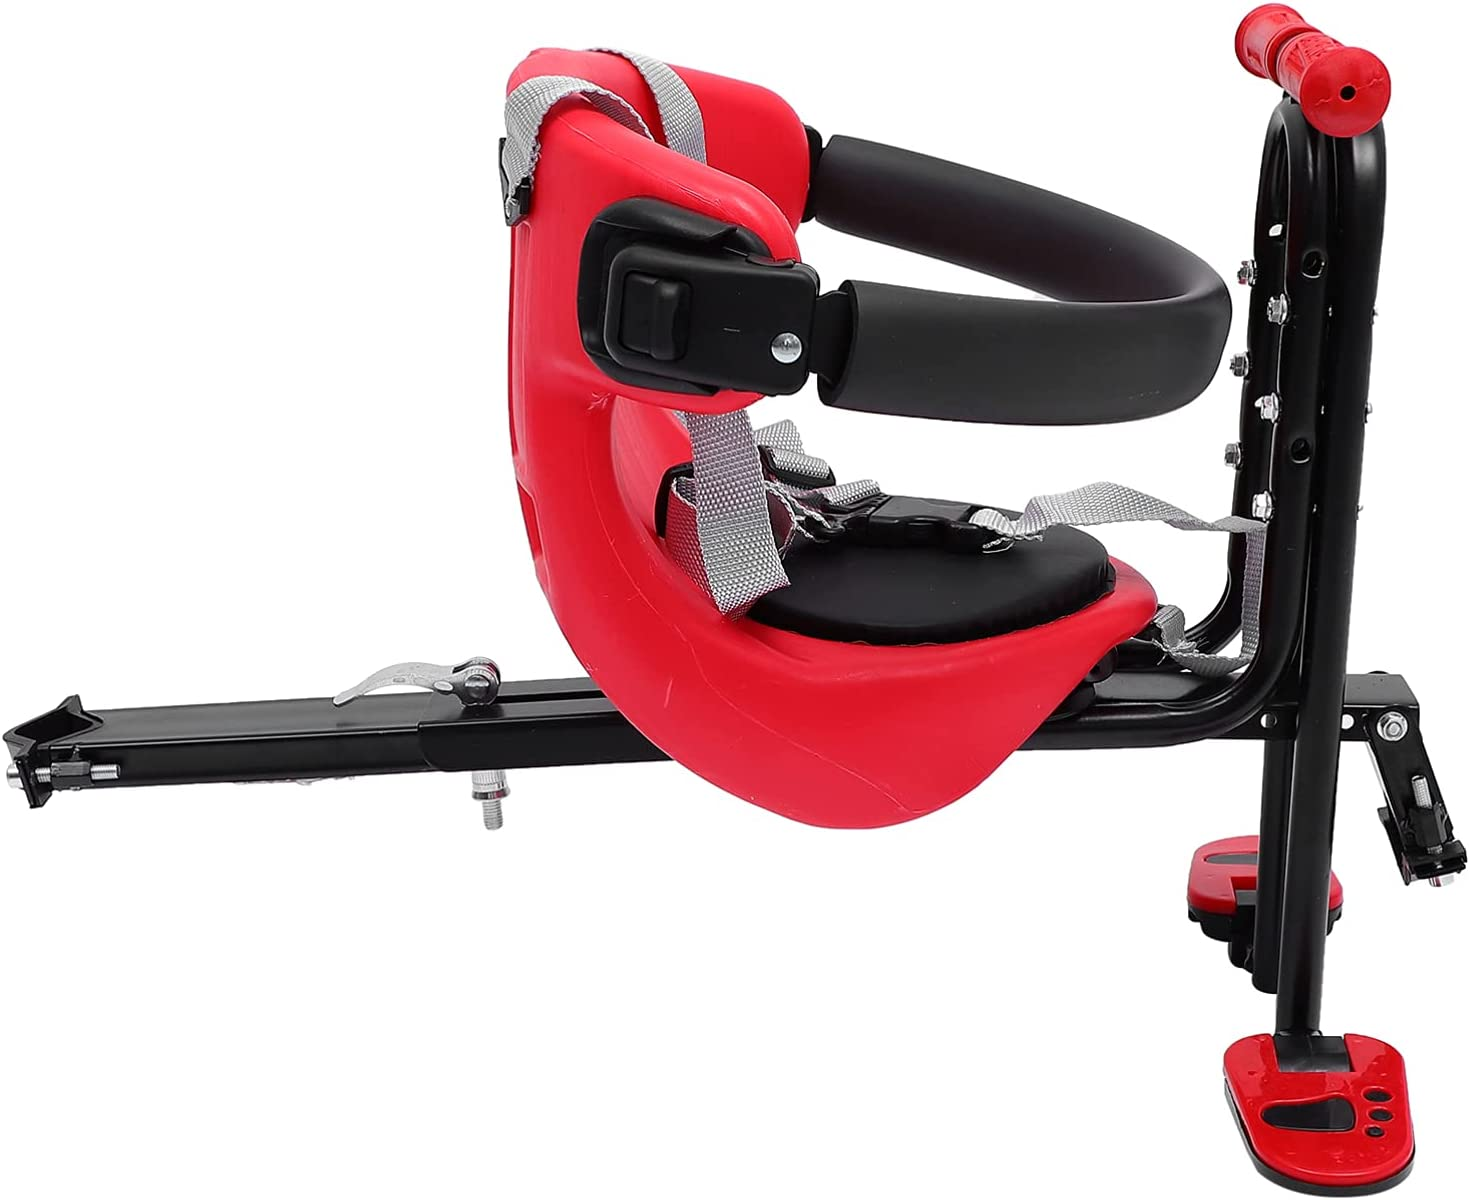 BESPORTBLE 1Pc Bicycle Child Seat Bike Front Mount Baby Chair Baby Safety Seat Baby Carrier with Handle.